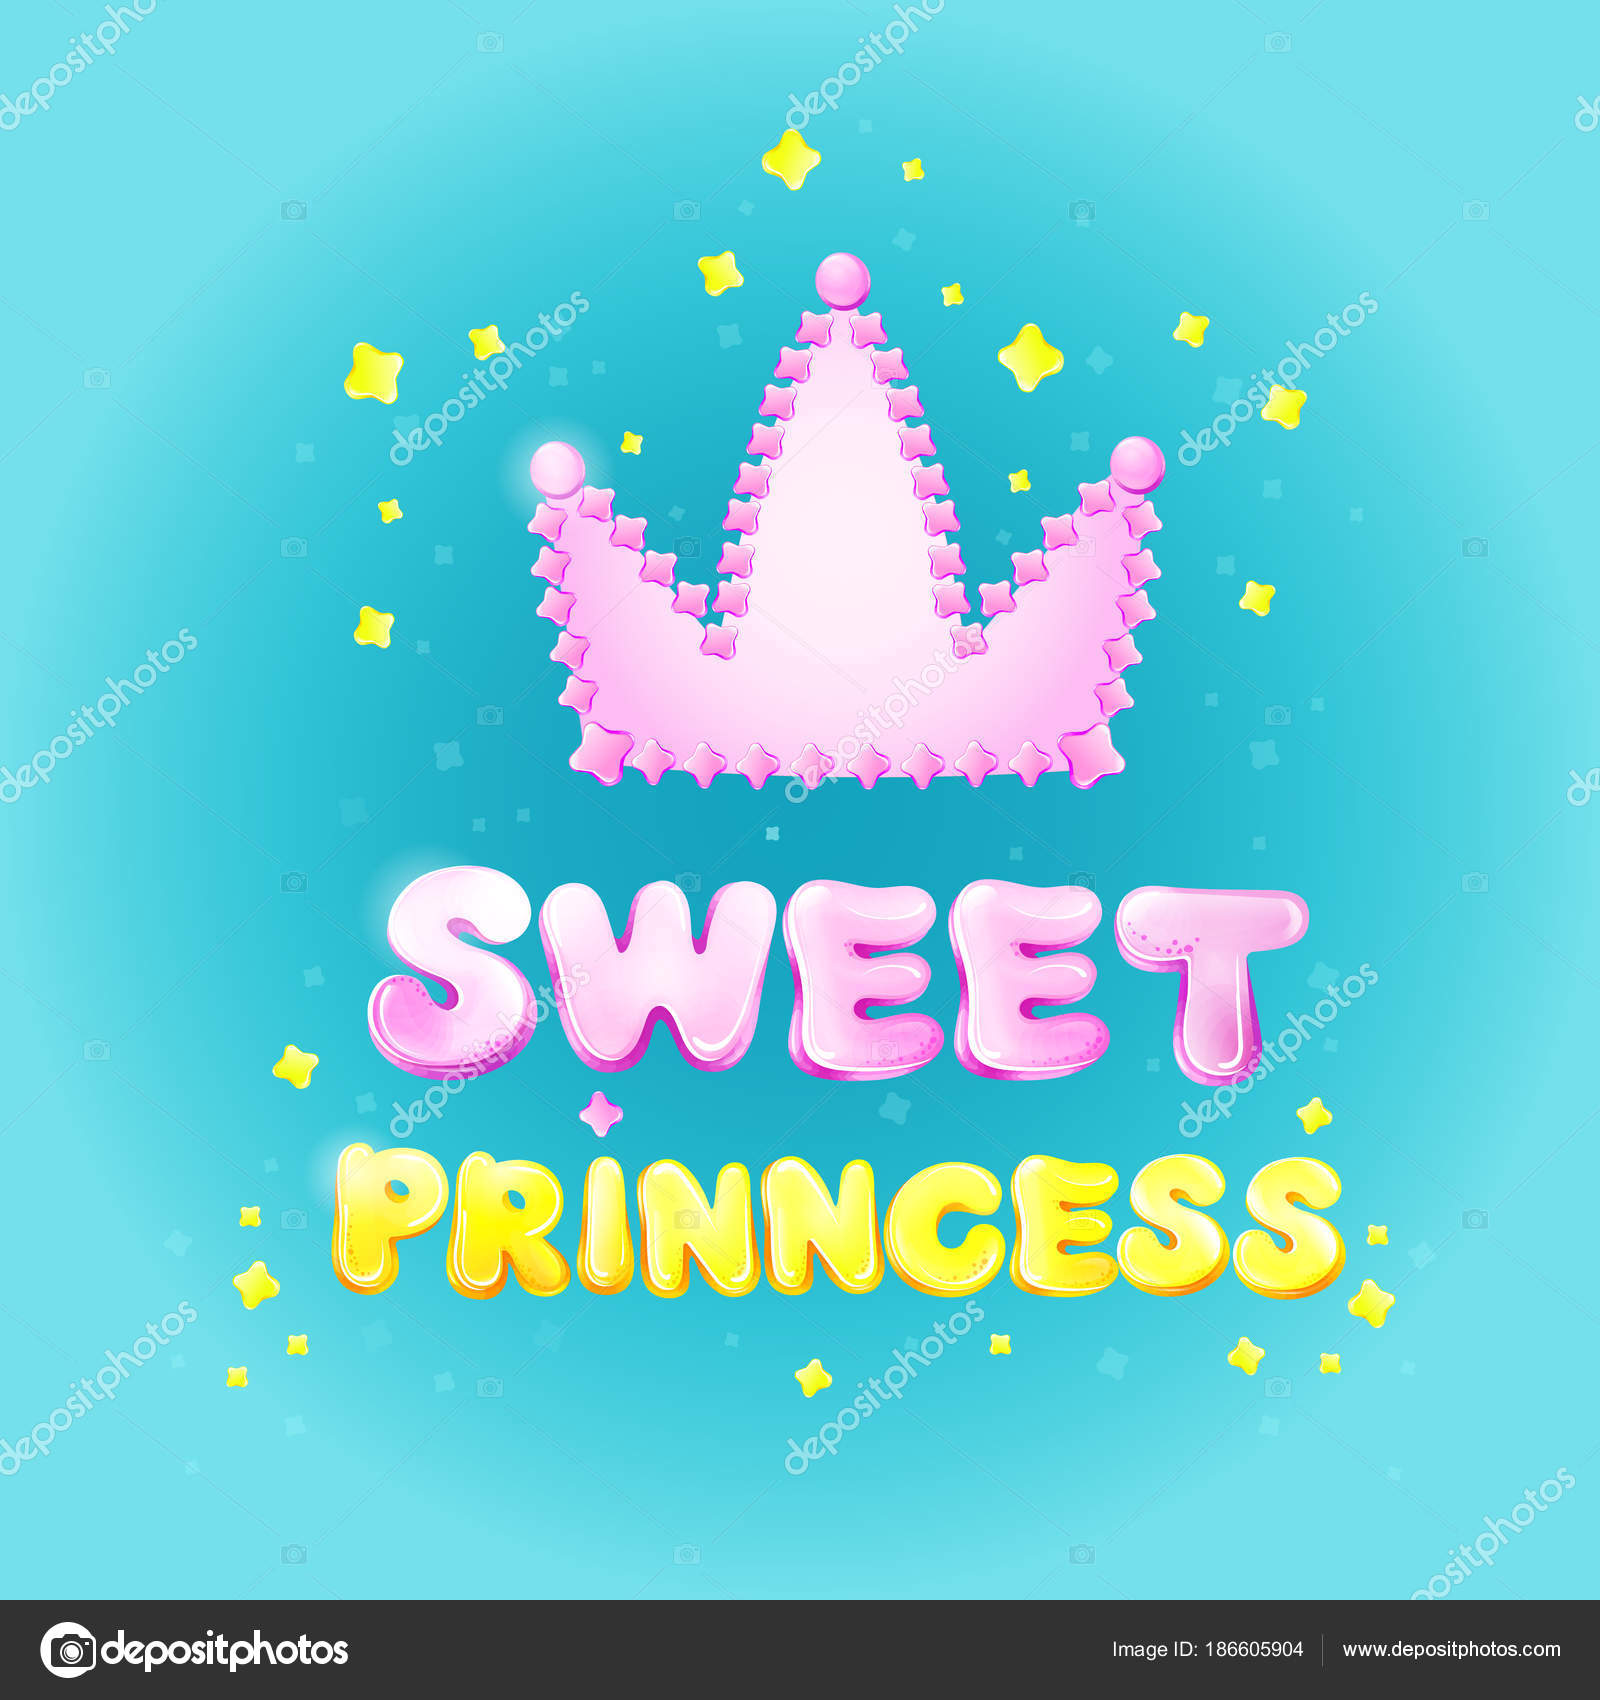 Sweet princess birthday greeting card vector illustration cartoon sweet princess birthday greeting or invitation card vector illustration for girl holiday or party celebration pink princess crown and golden stars confetti stopboris Choice Image